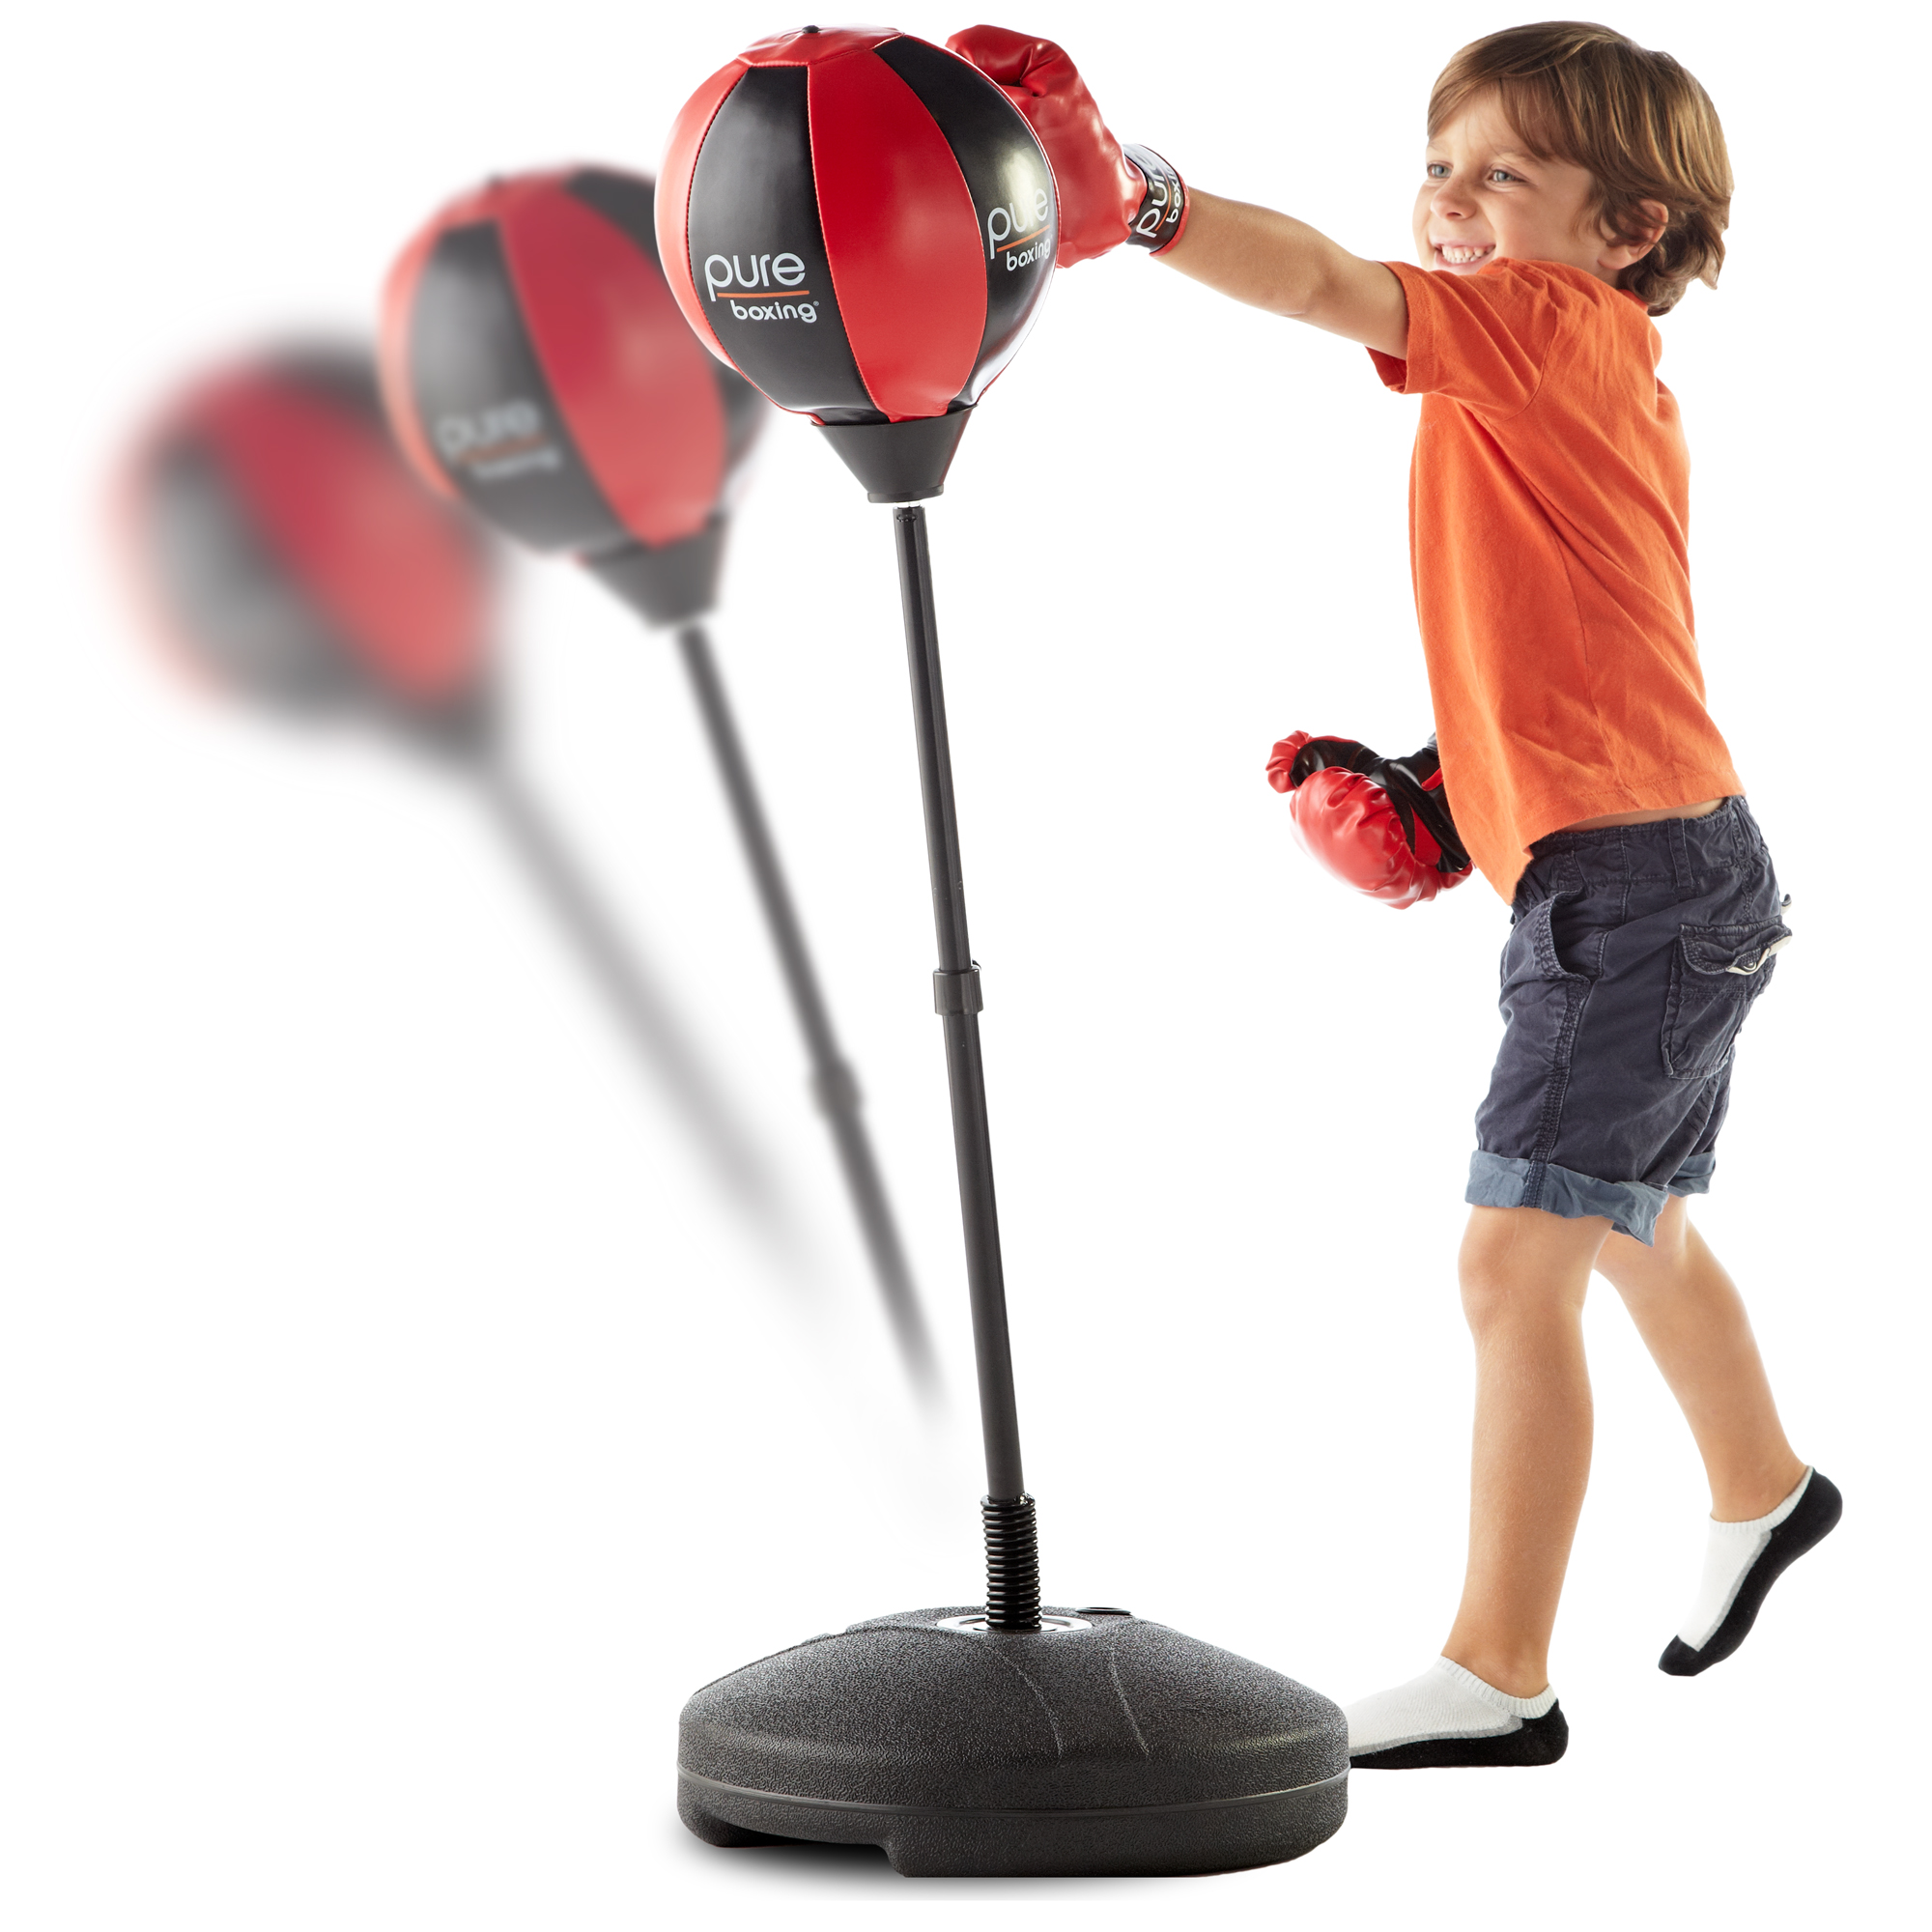 Pure Boxing Punch and Play Boxing Set - 8903PP - Lifestyle